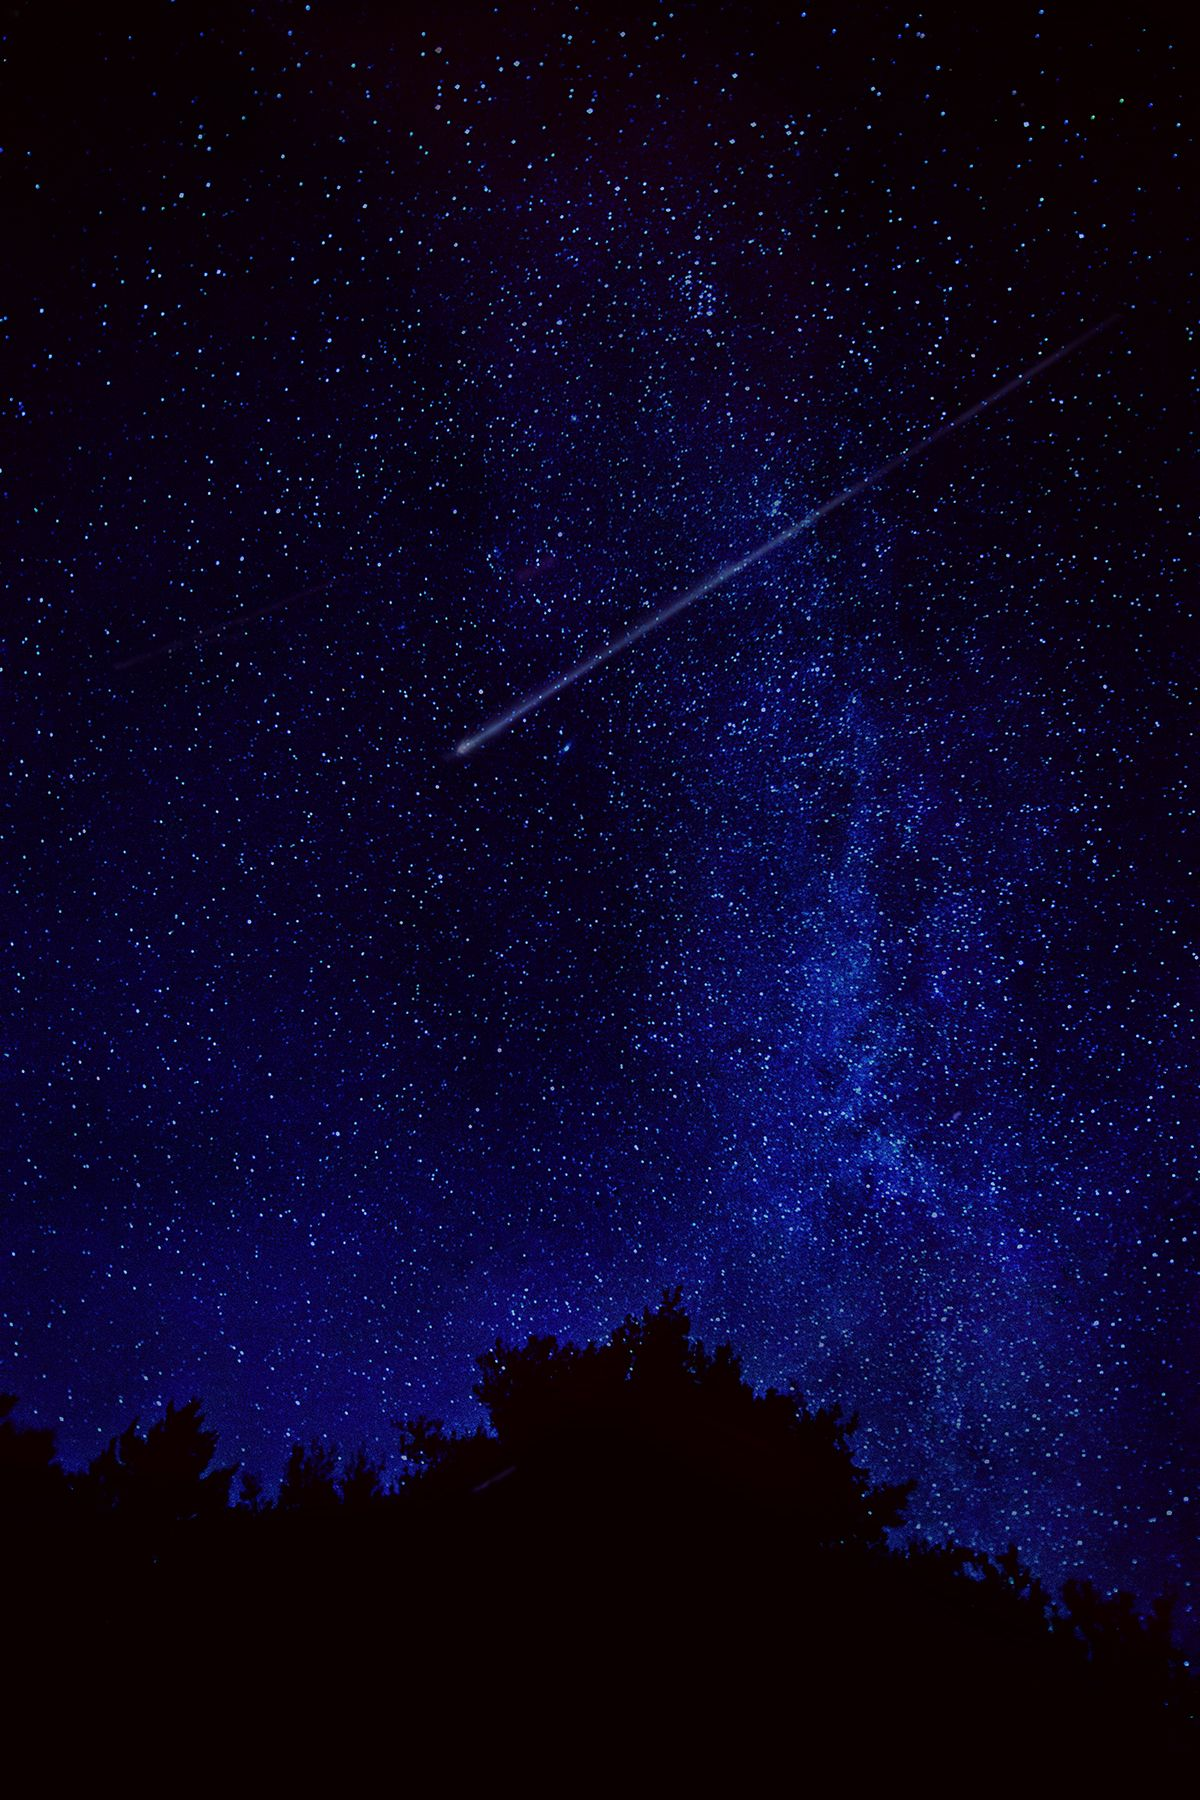 August Augury Stars And Moon Sky Full Of Stars Fine Art Landscape Photography